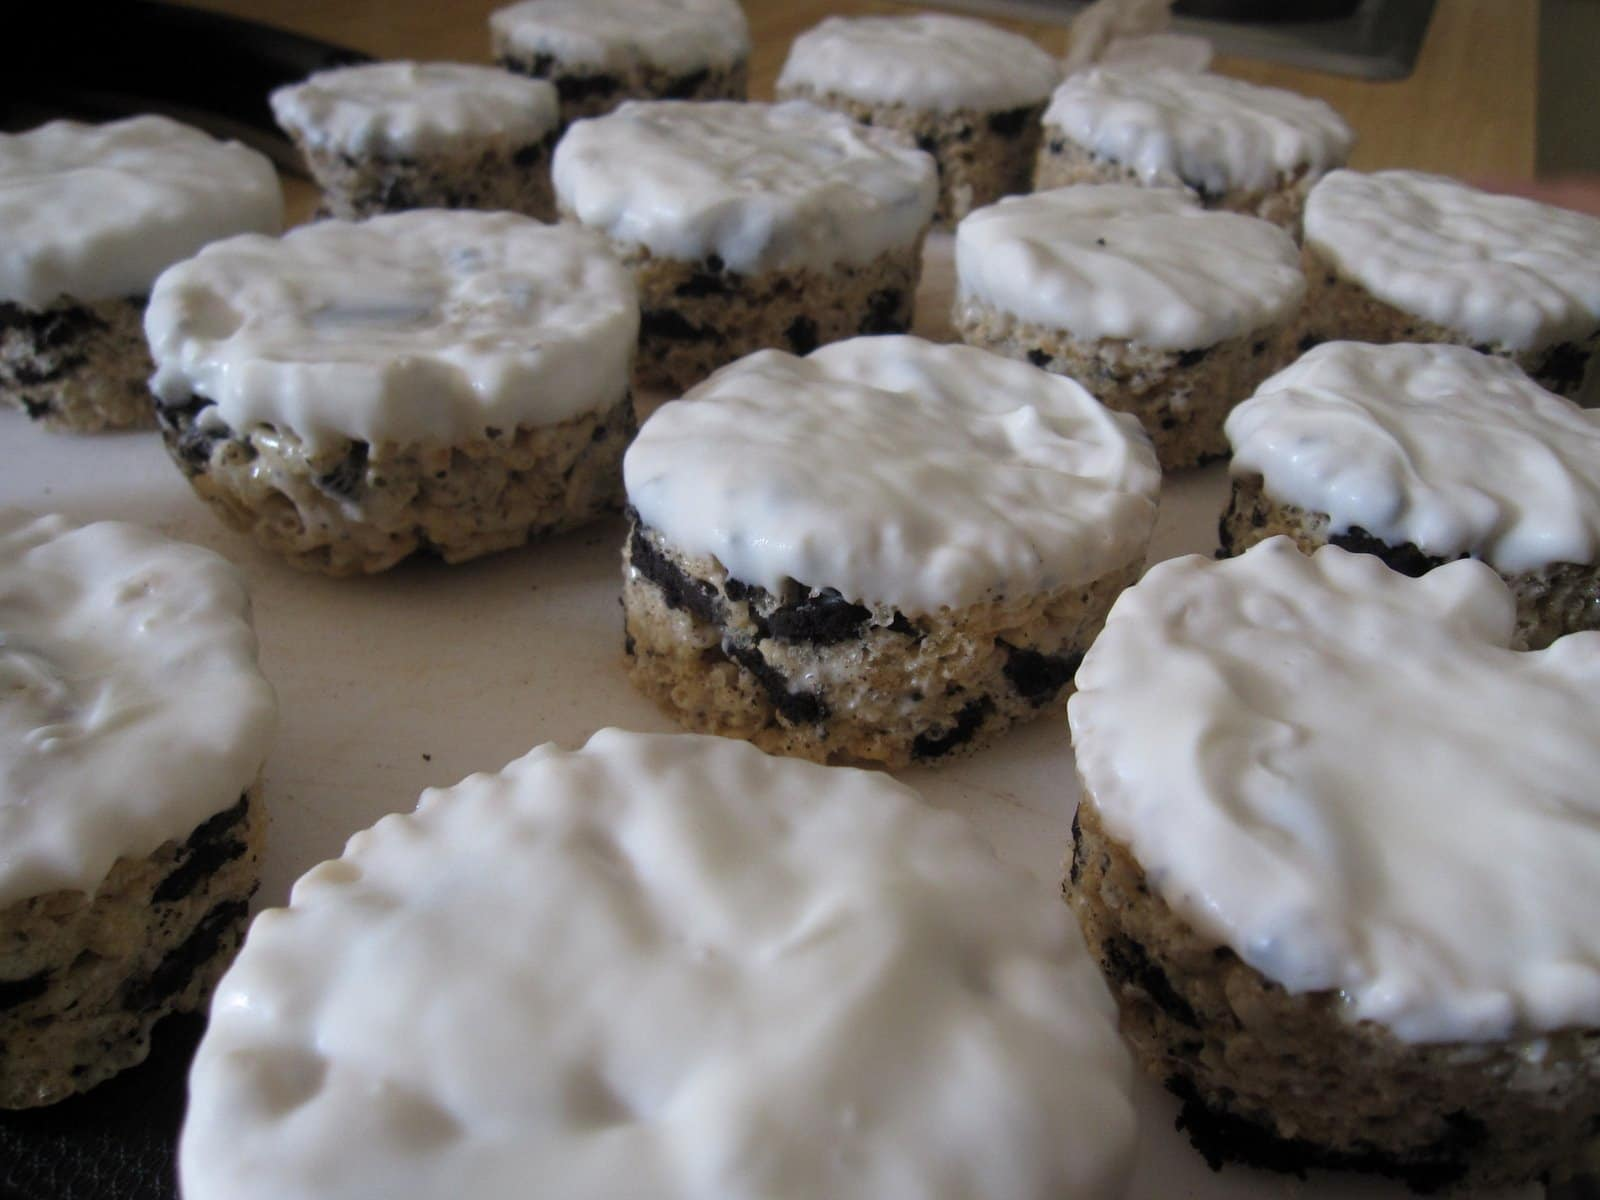 Several Oreo Krispie circles with white chocolate on top